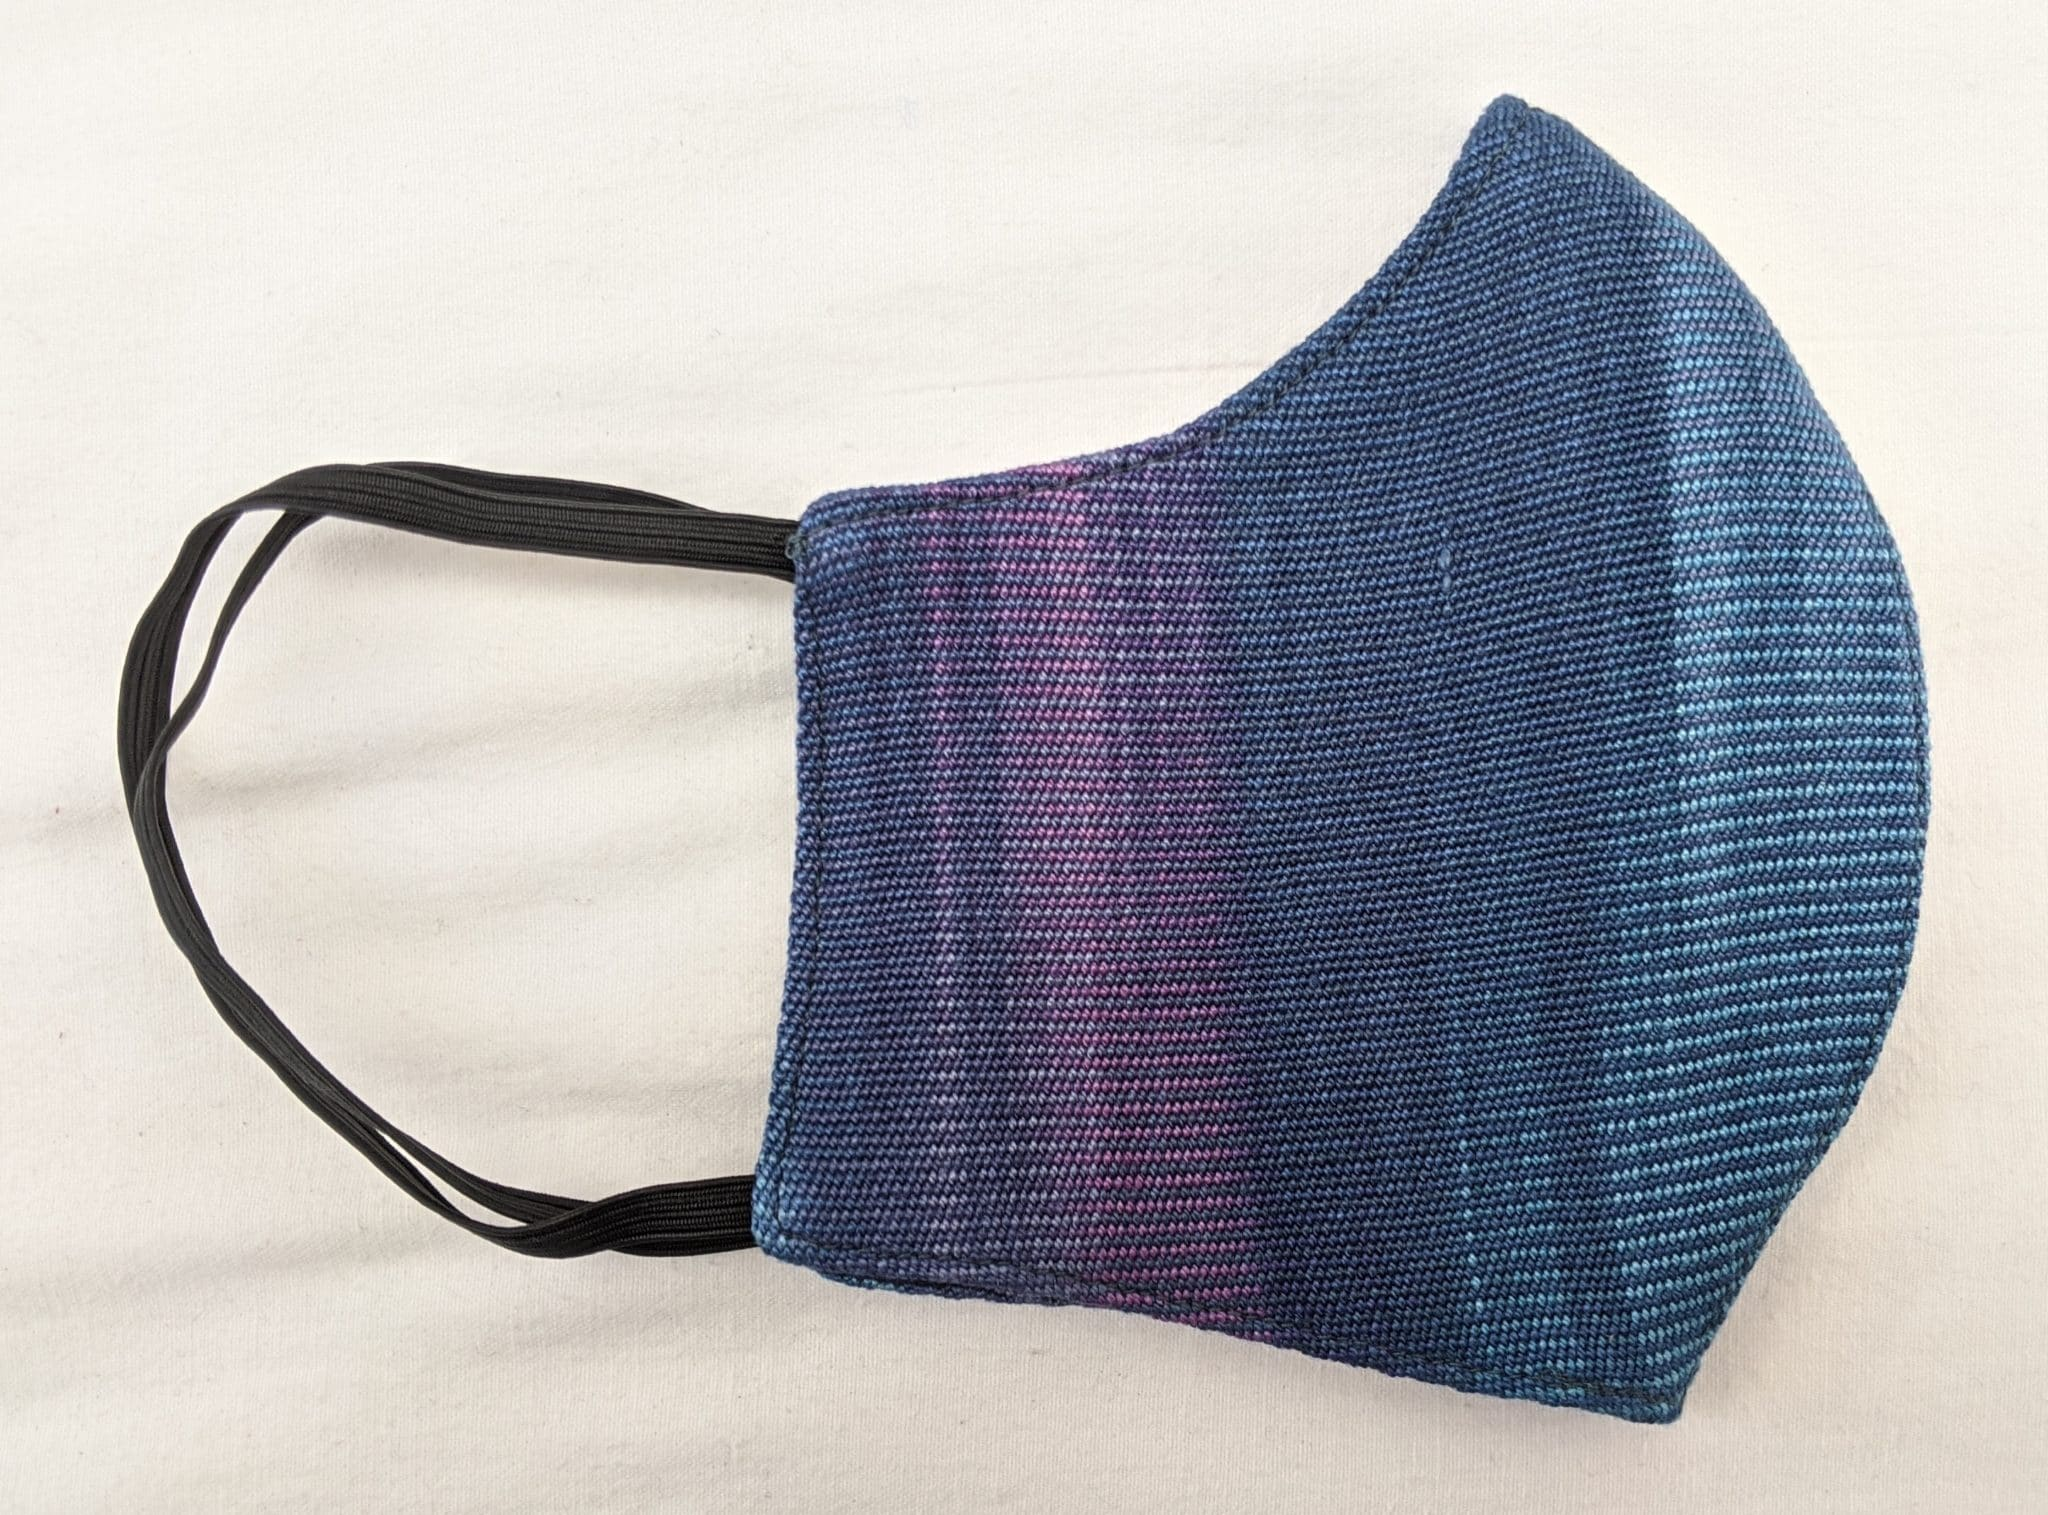 Handwoven Lightweight Bamboo Face Mask with Elastic Behind Ears - Blues, Purples